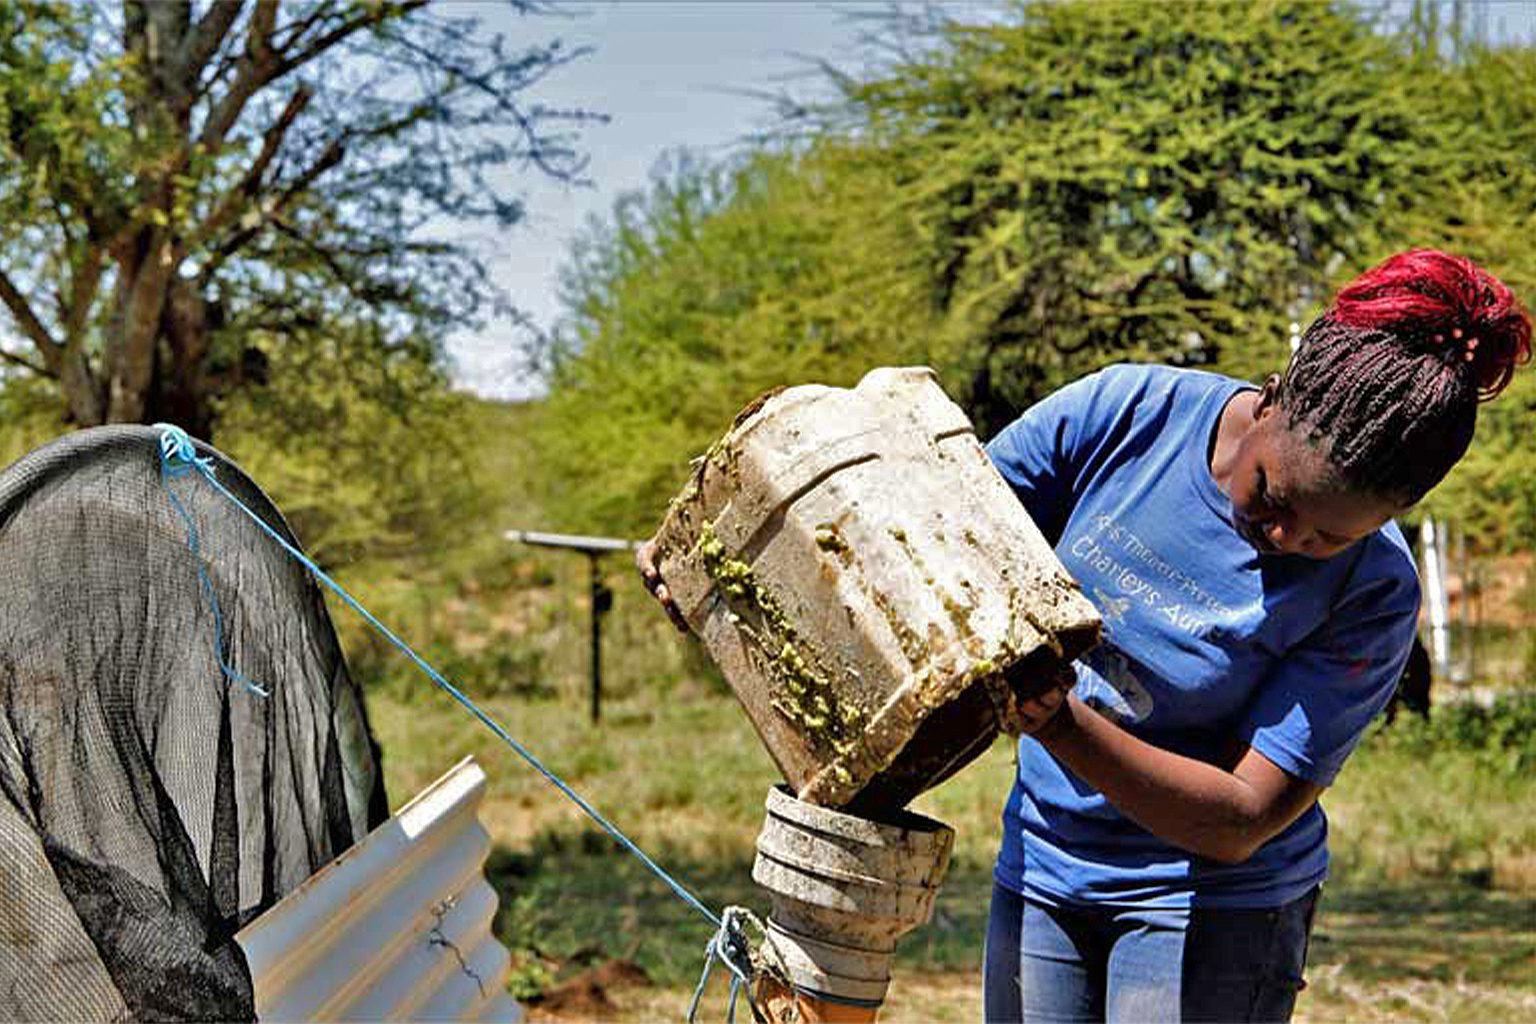 refilling biogas digester with prickly pear pulp. credit Anthony Langat.